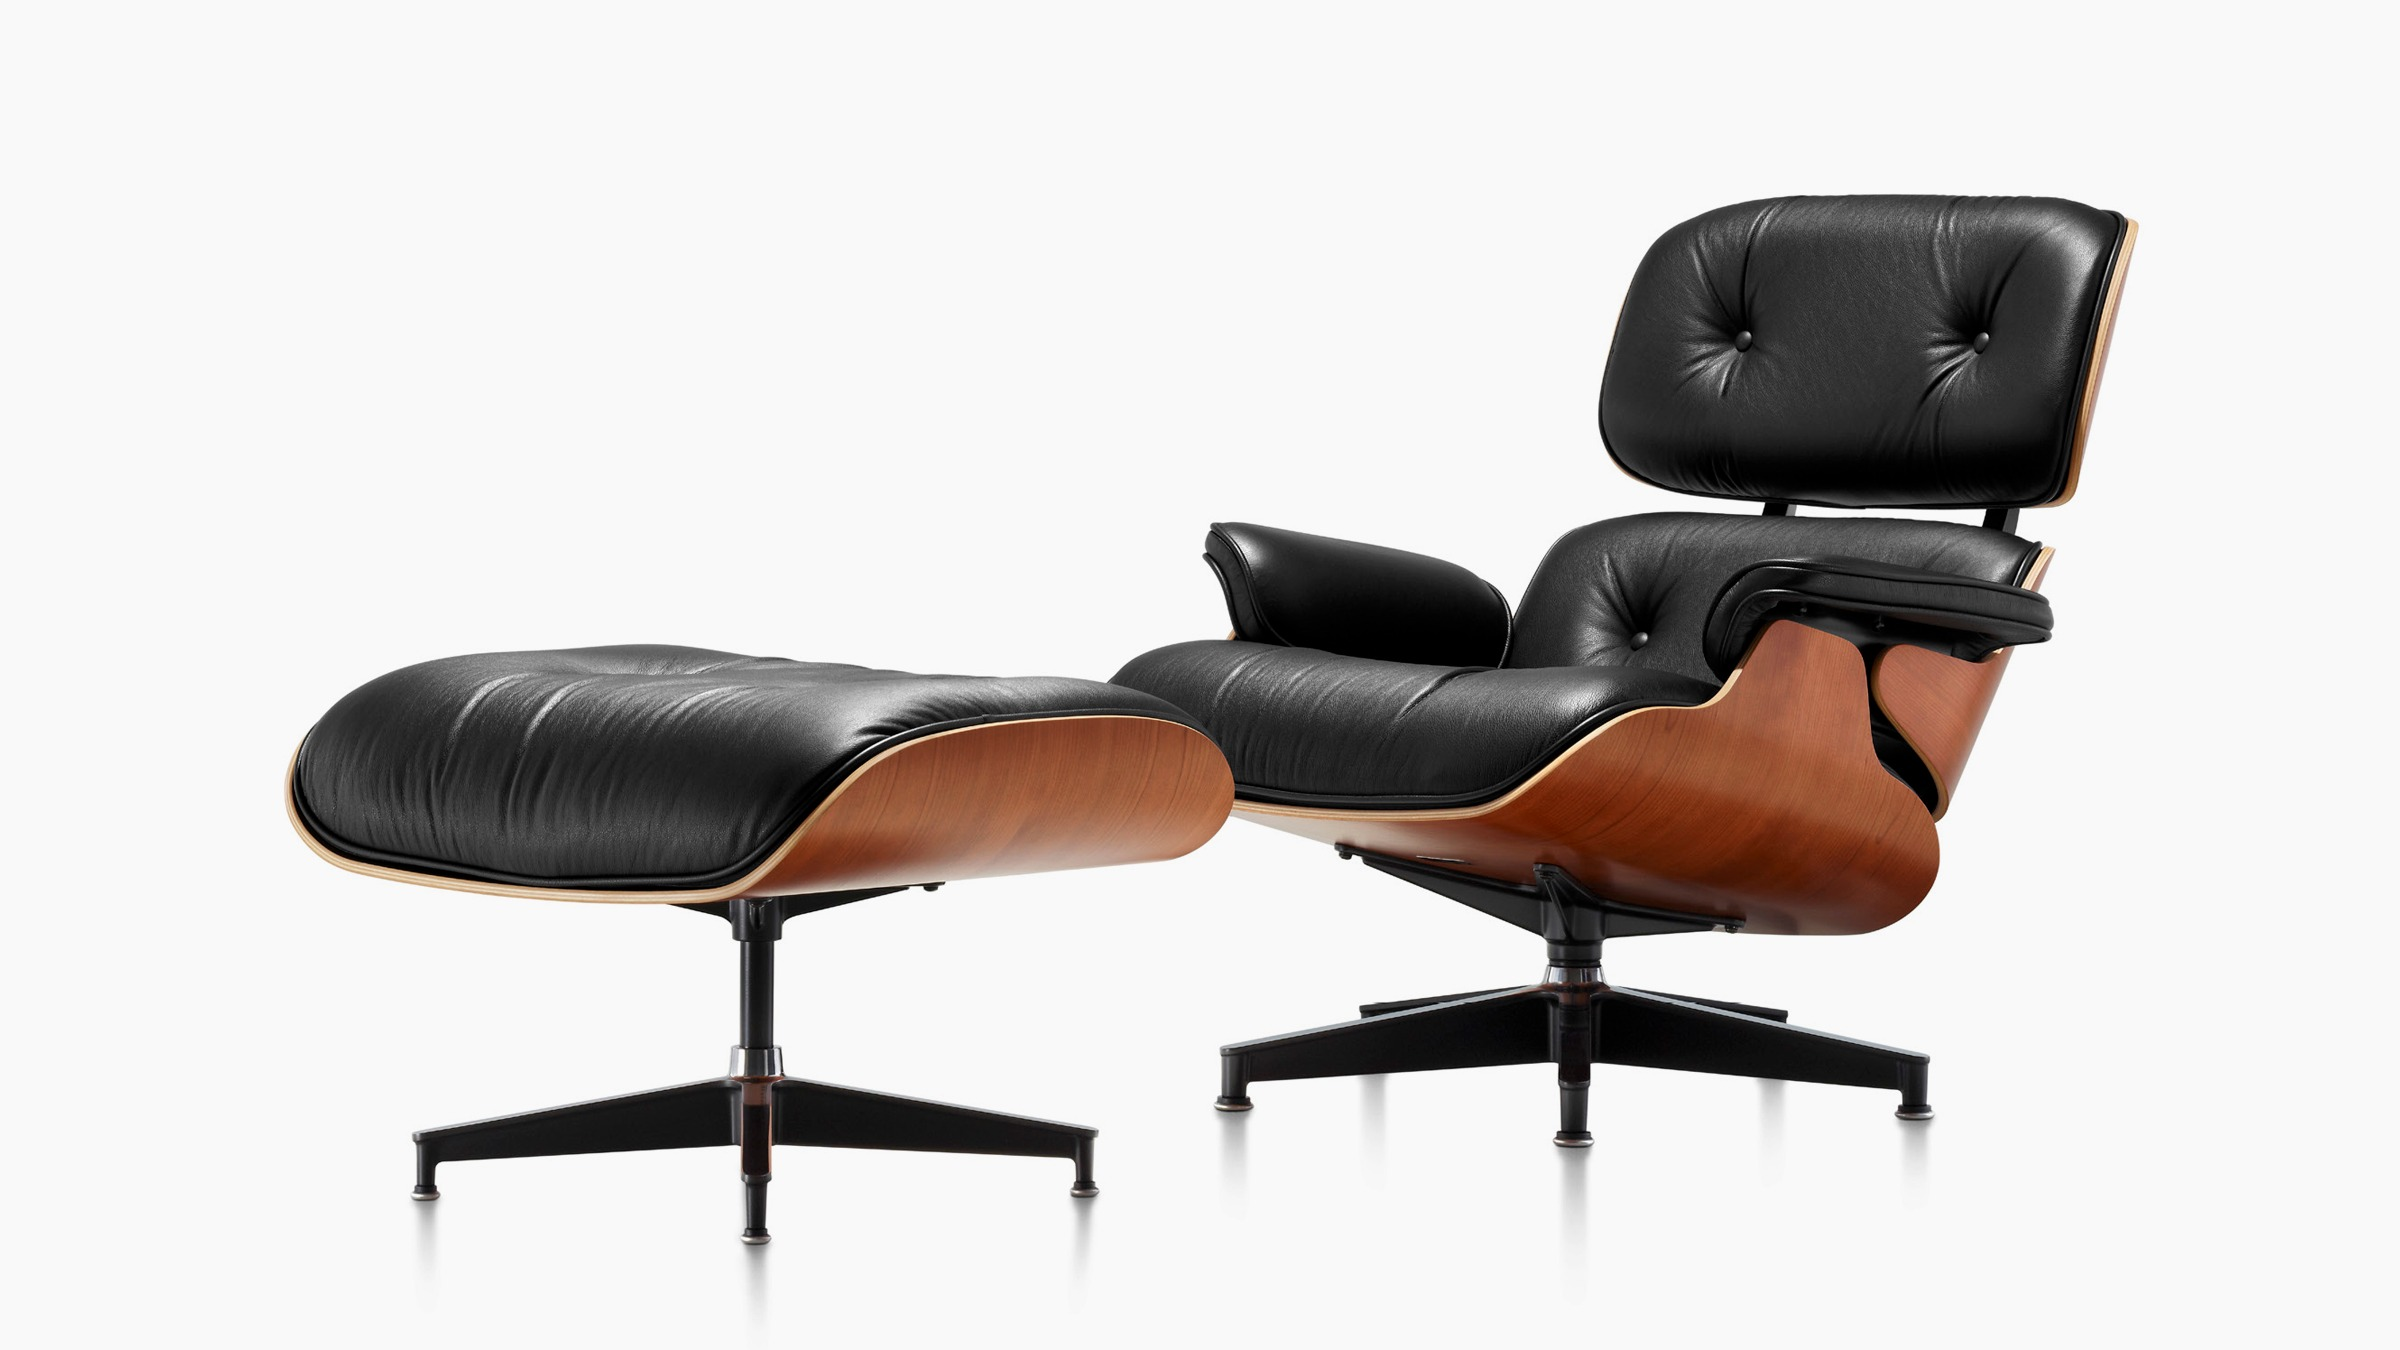 Eames Chair Herman Miller Ebay Cheap Eames Aeron And Barcelona Chairs Inside The Black Market